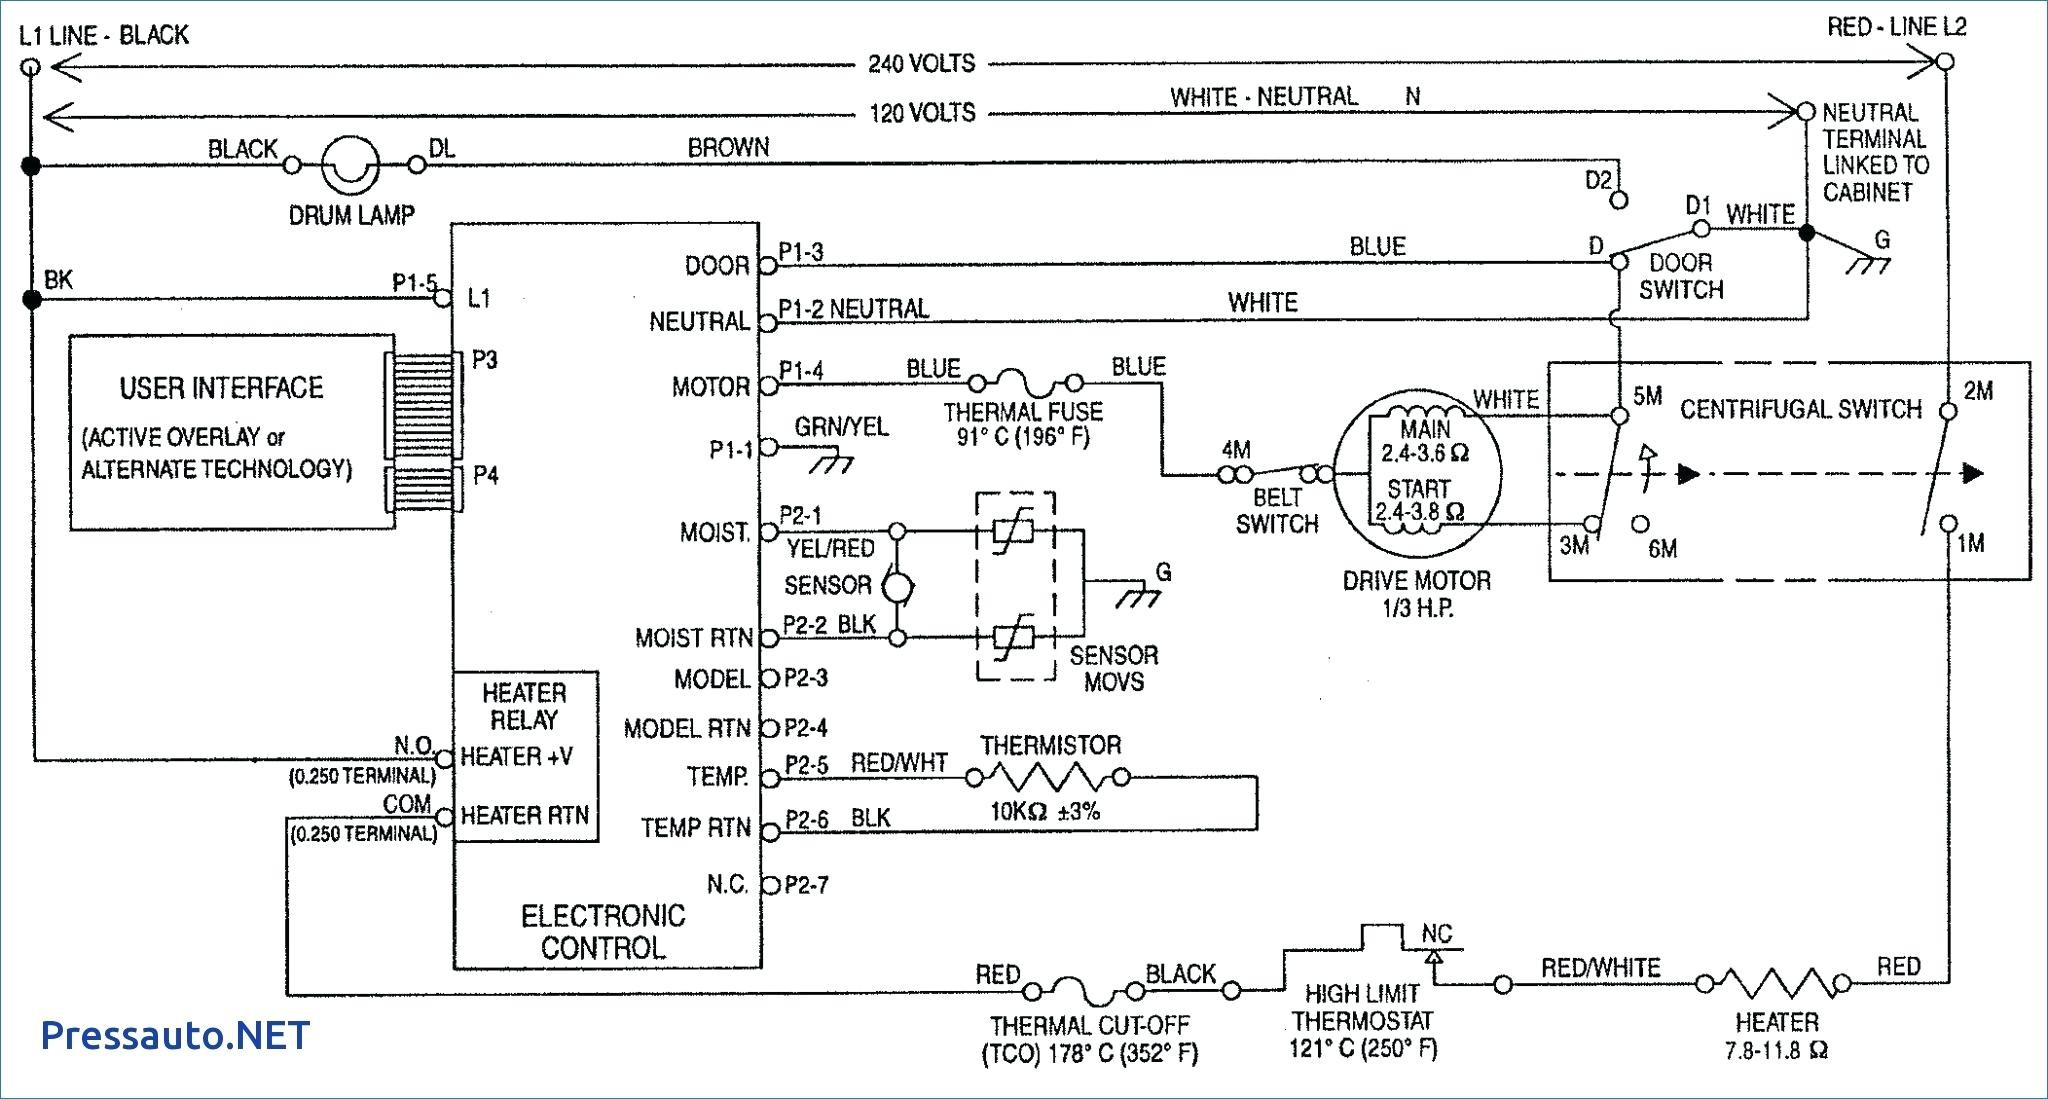 Older Gas Furnace Wiring Diagram Goodman Furnace Wiring Diagram Heater Electric Marvelous Plete Of Older Gas Furnace Wiring Diagram